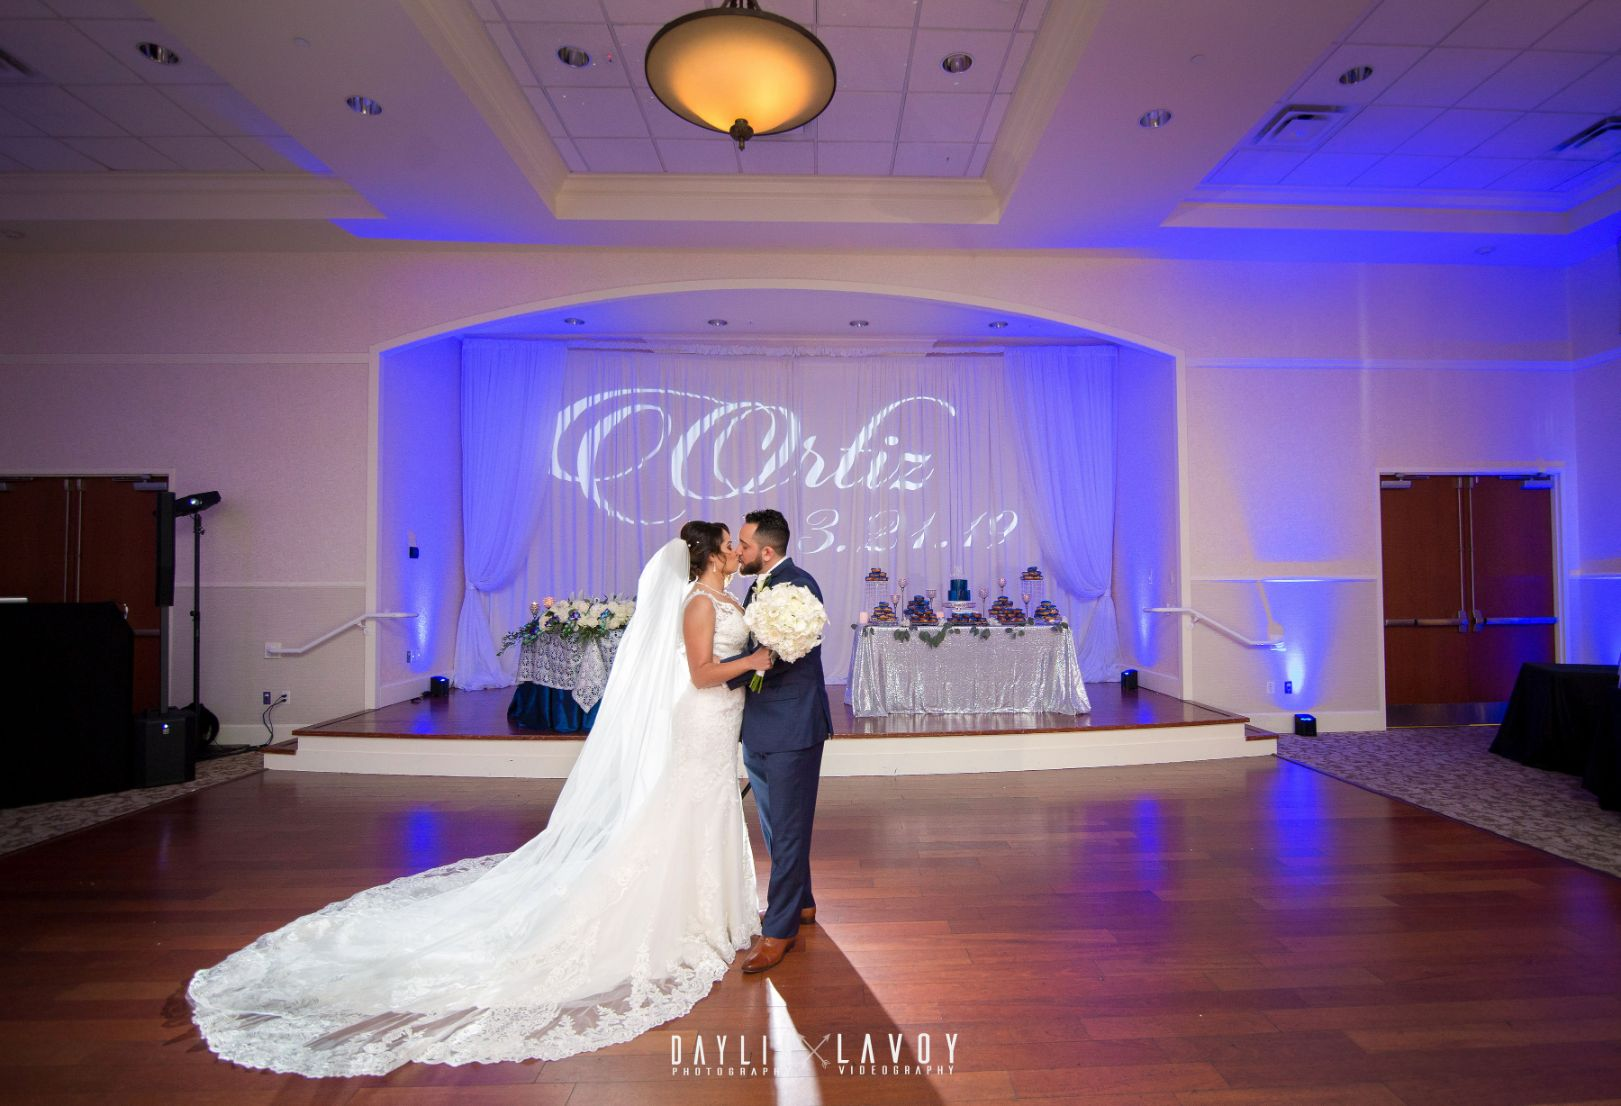 monogram 200 xclusive deejays winter springs florida wedding dj lighting photo booth entertainment